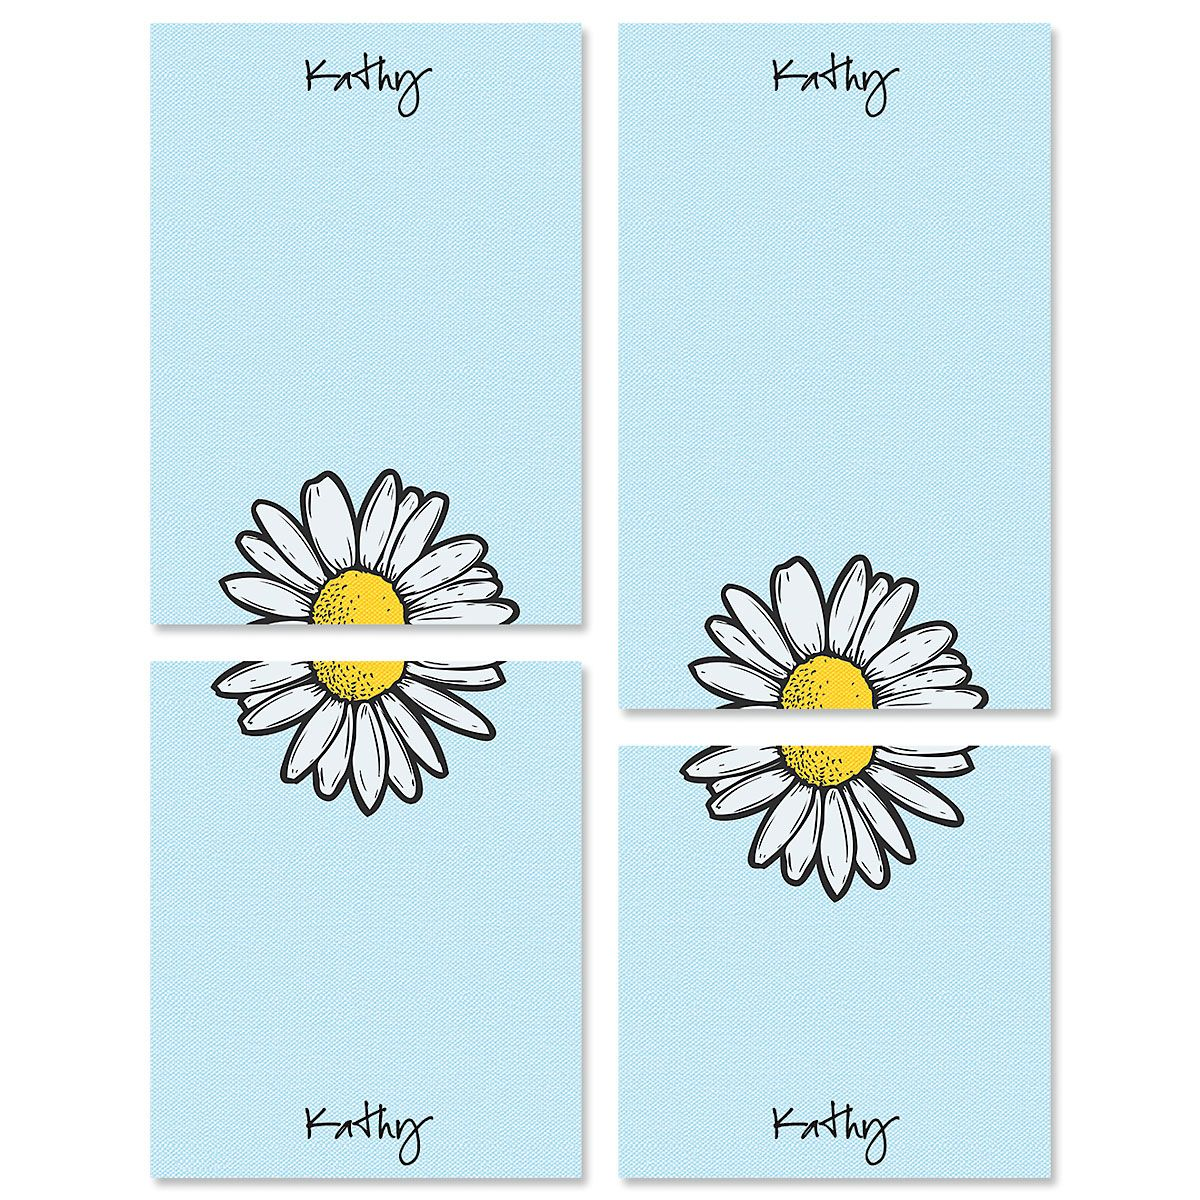 Textile Daisy Personalized Notepad Sets